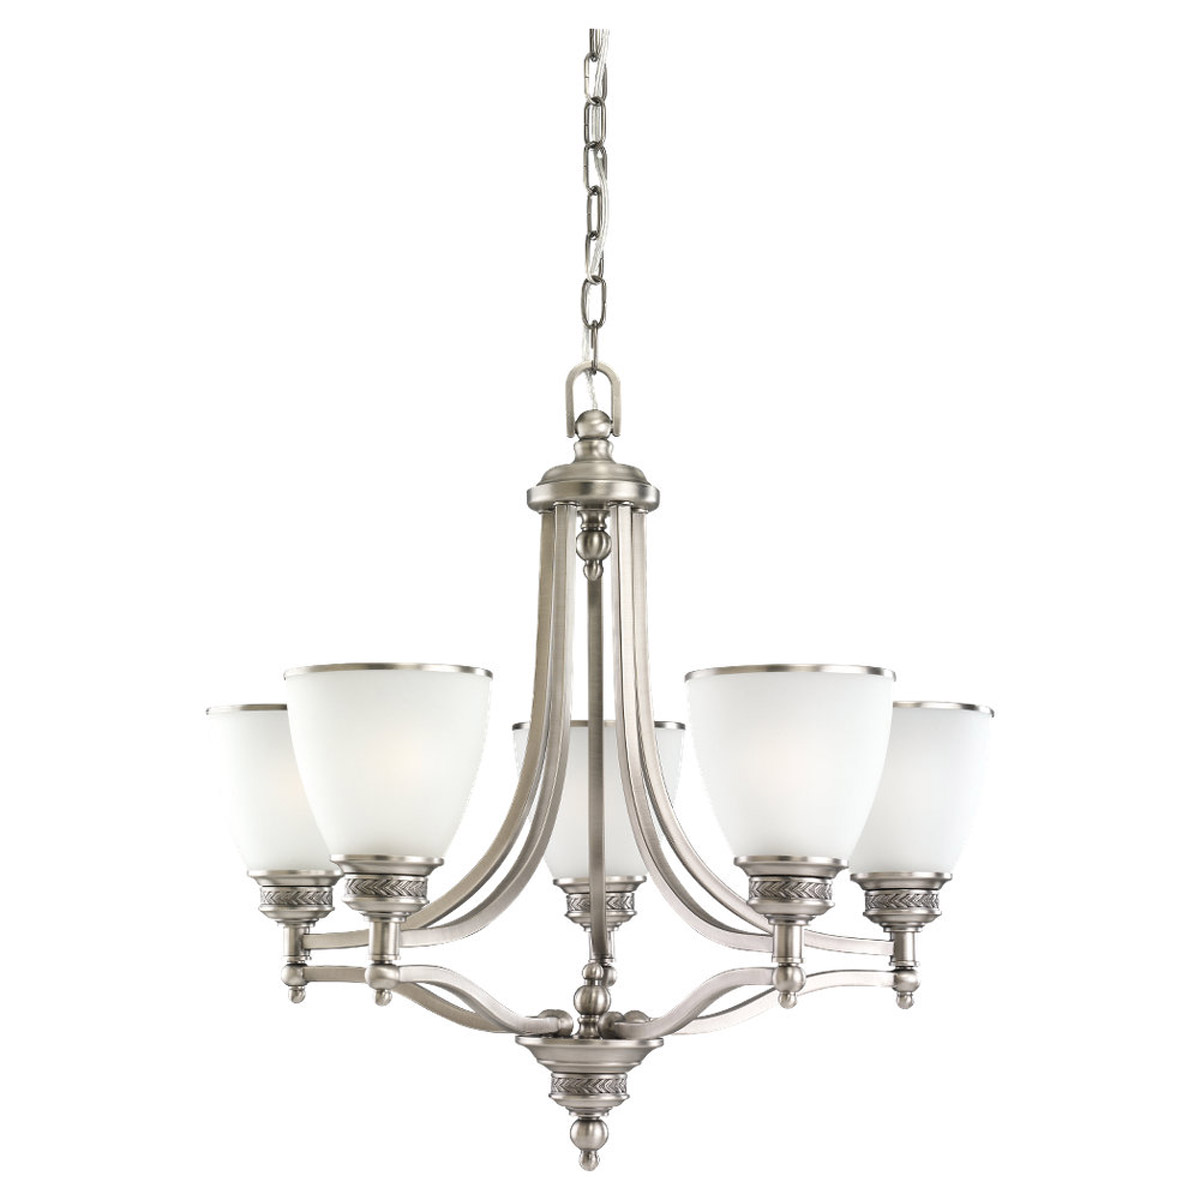 Sea Gull 31350-965 Laurel Leaf 5 Light 25 inch Antique Brushed Nickel Chandelier Ceiling Light photo